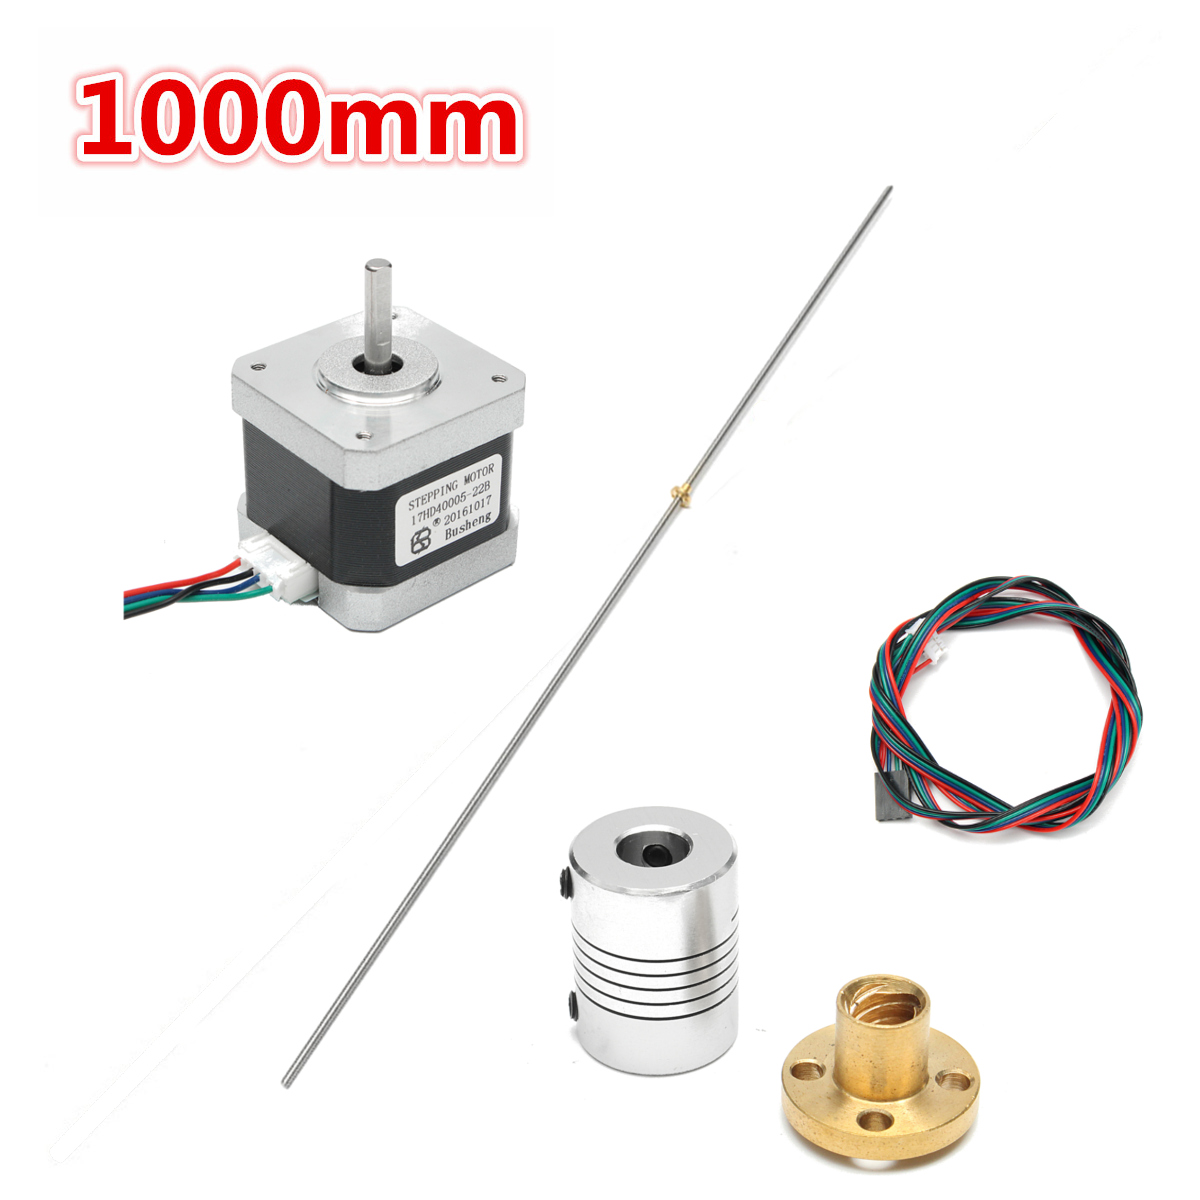 T8 1000mm Stainless Steel Lead Screw with Screw Nut KFL08 Mounted ball bearing Shaft coupling Motor Set 3D printer Accessories mtgather t8 1000mm stainless steel lead screw coupling shaft brass nut motor 3d printer accessories